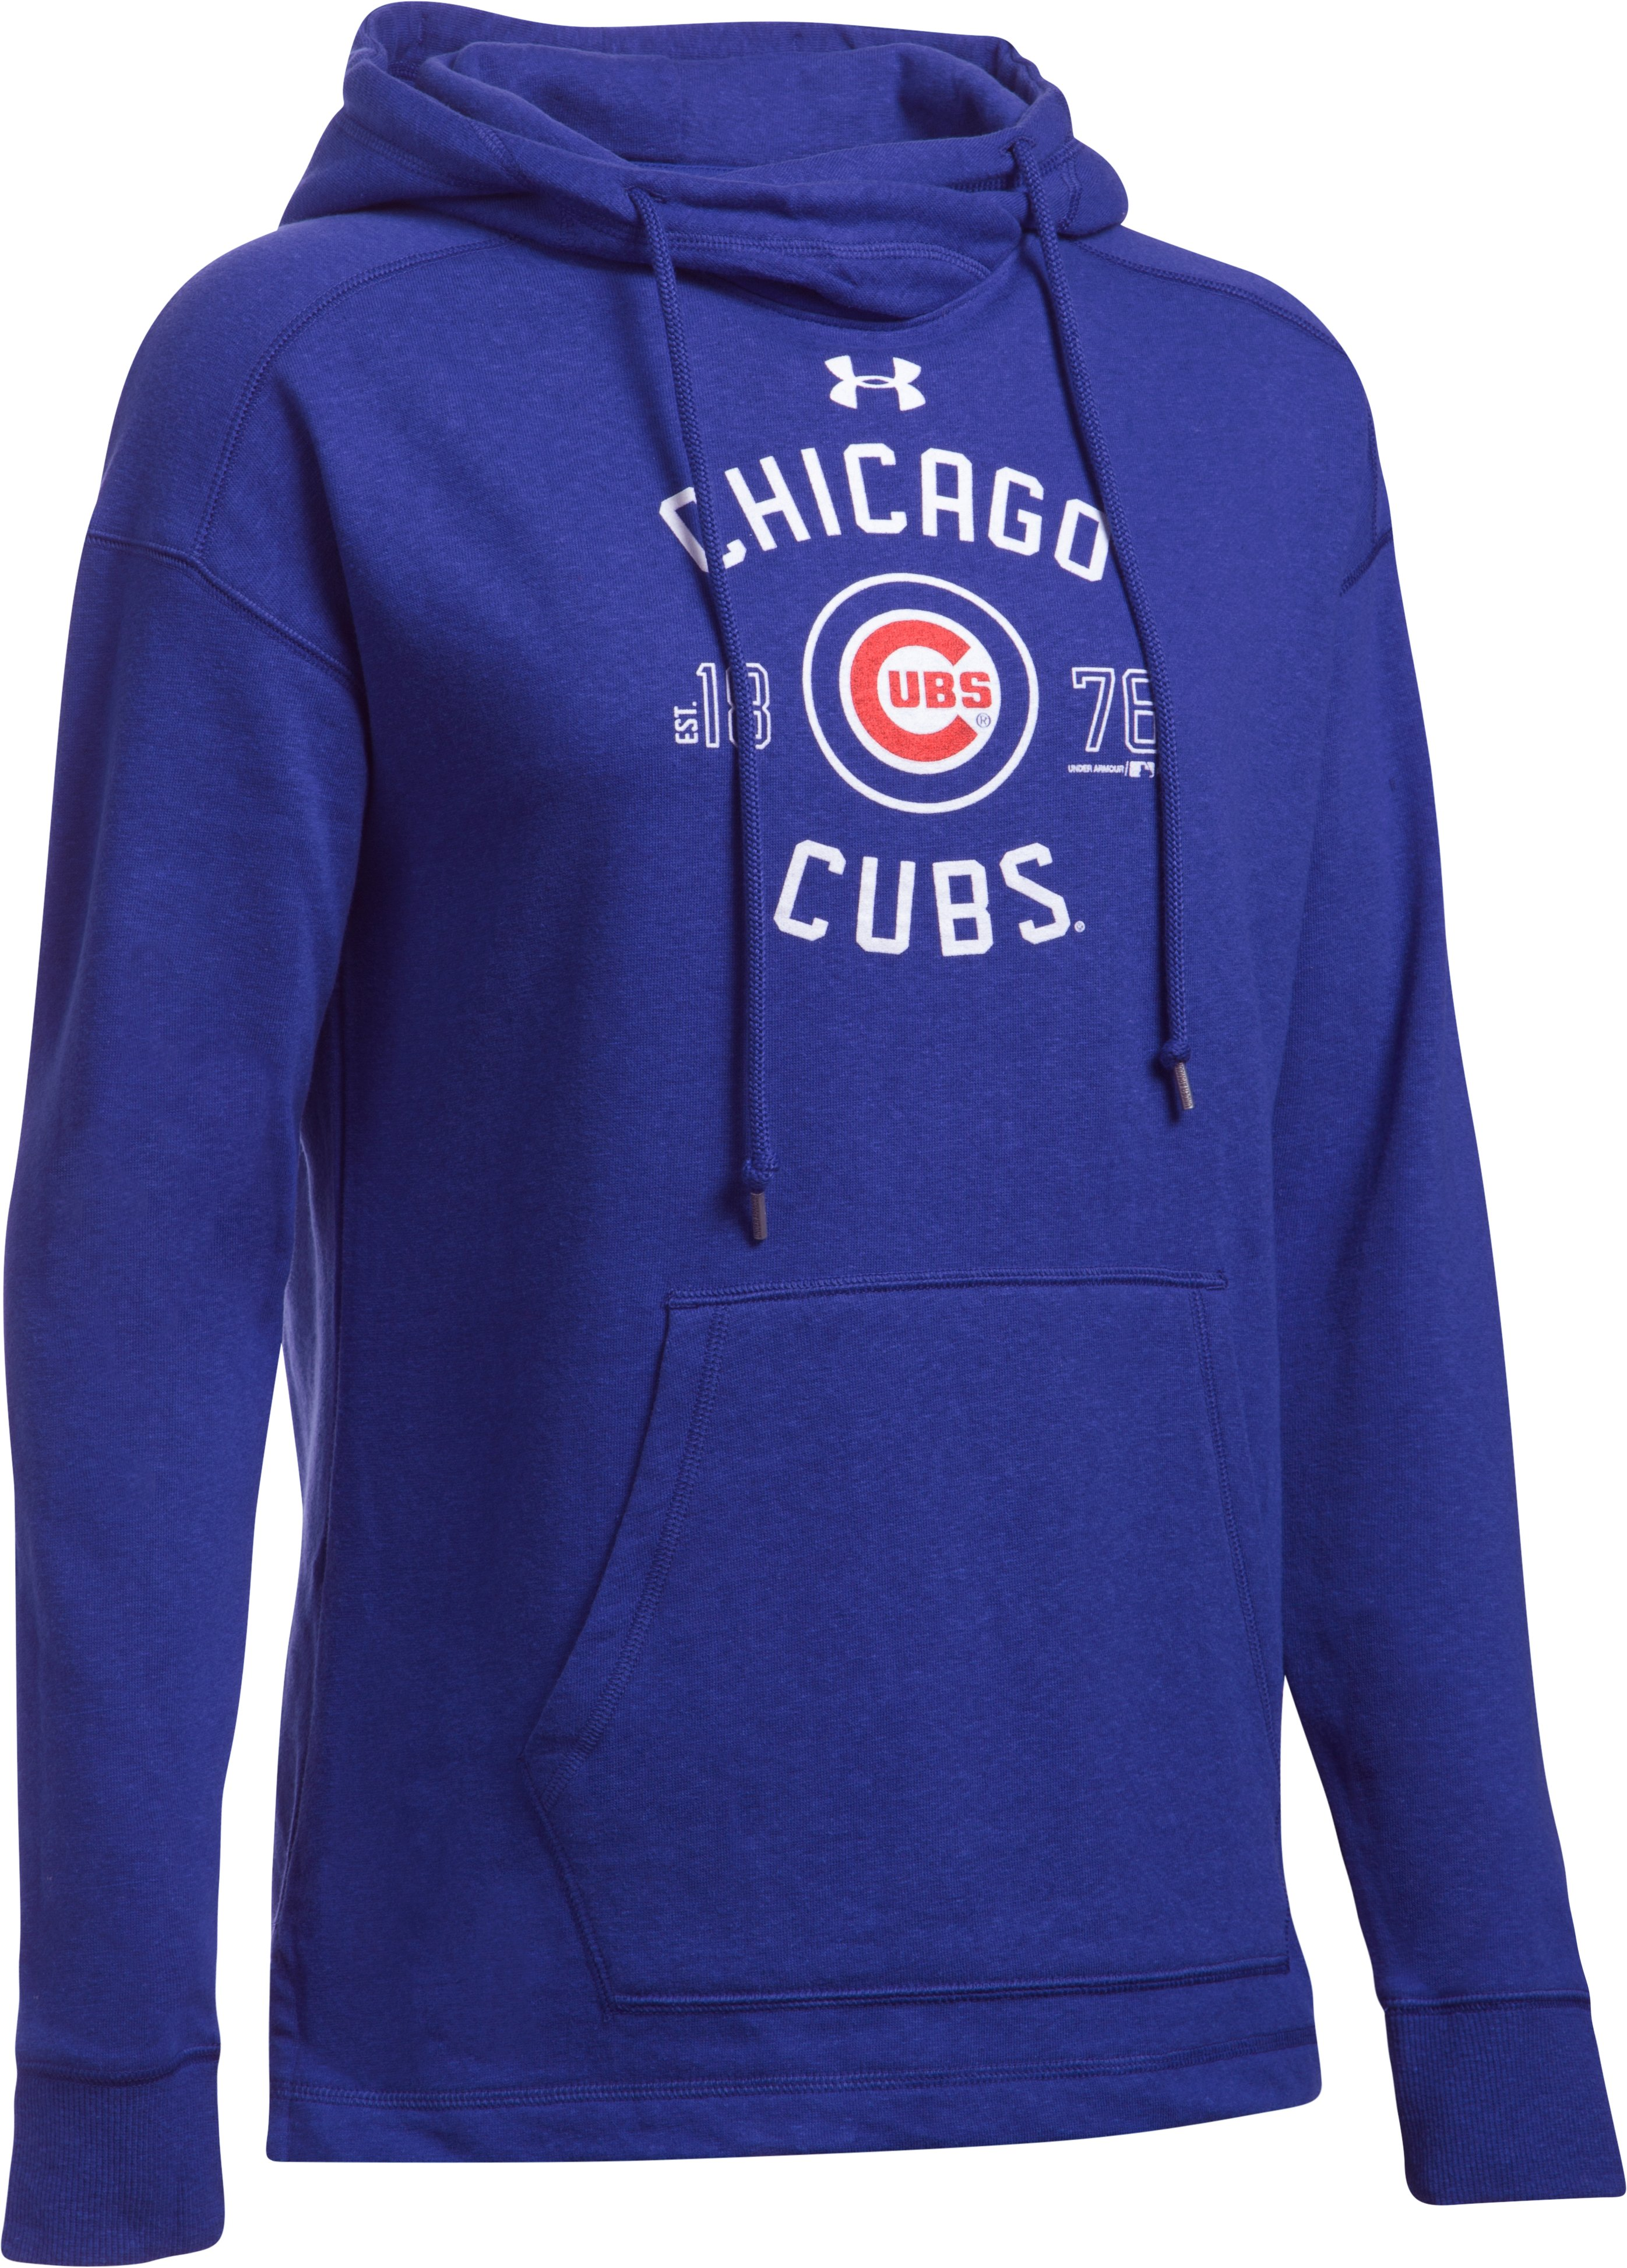 Women's Chicago Cubs Armour® Fleece Hoodie, Royal